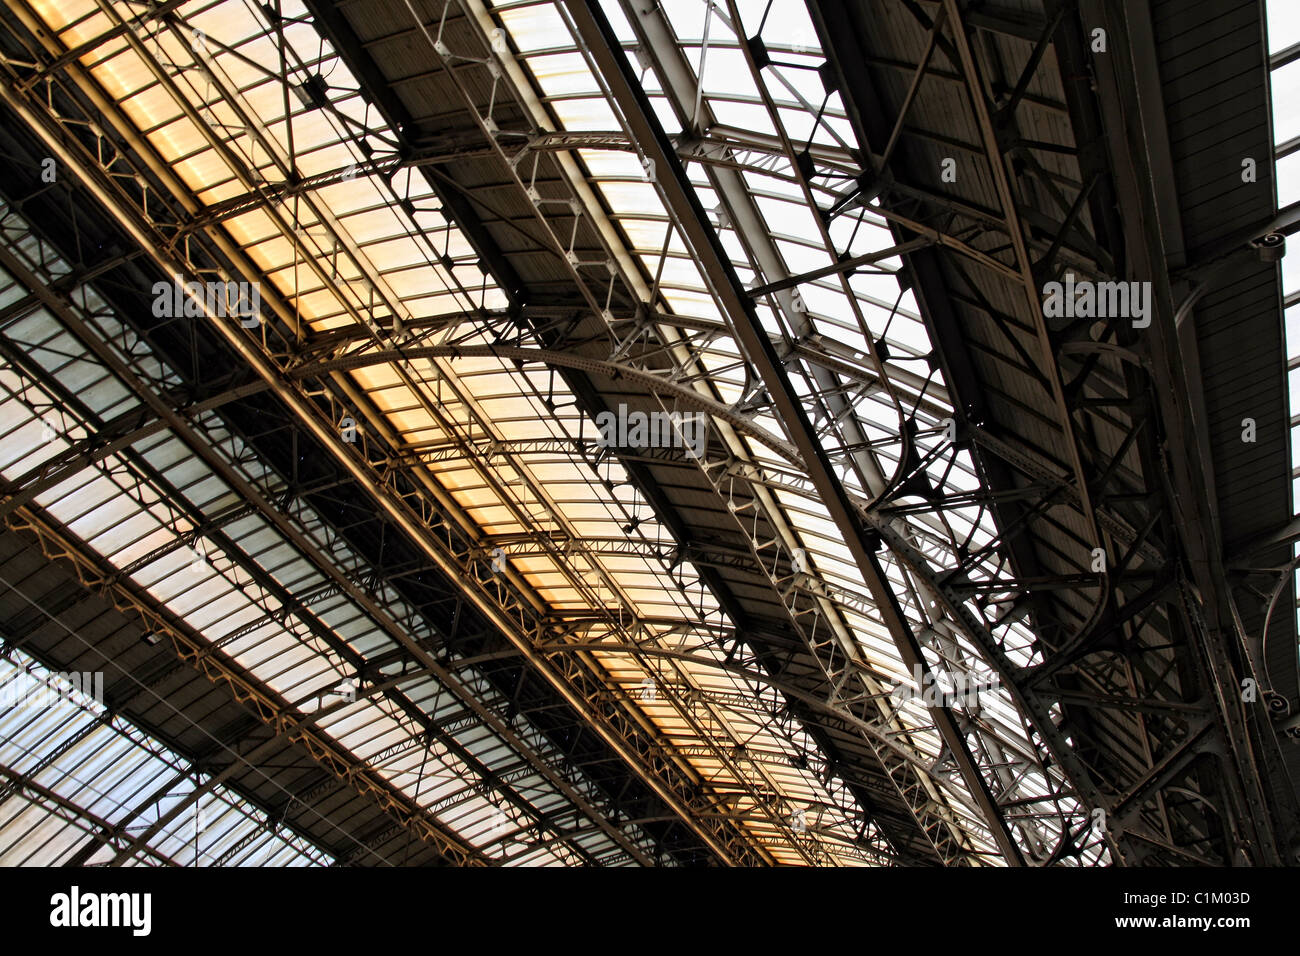 ceiling indoor railway station in Lvov.Roof detail , arch vault, rivet steel framework with windows. - Stock Image